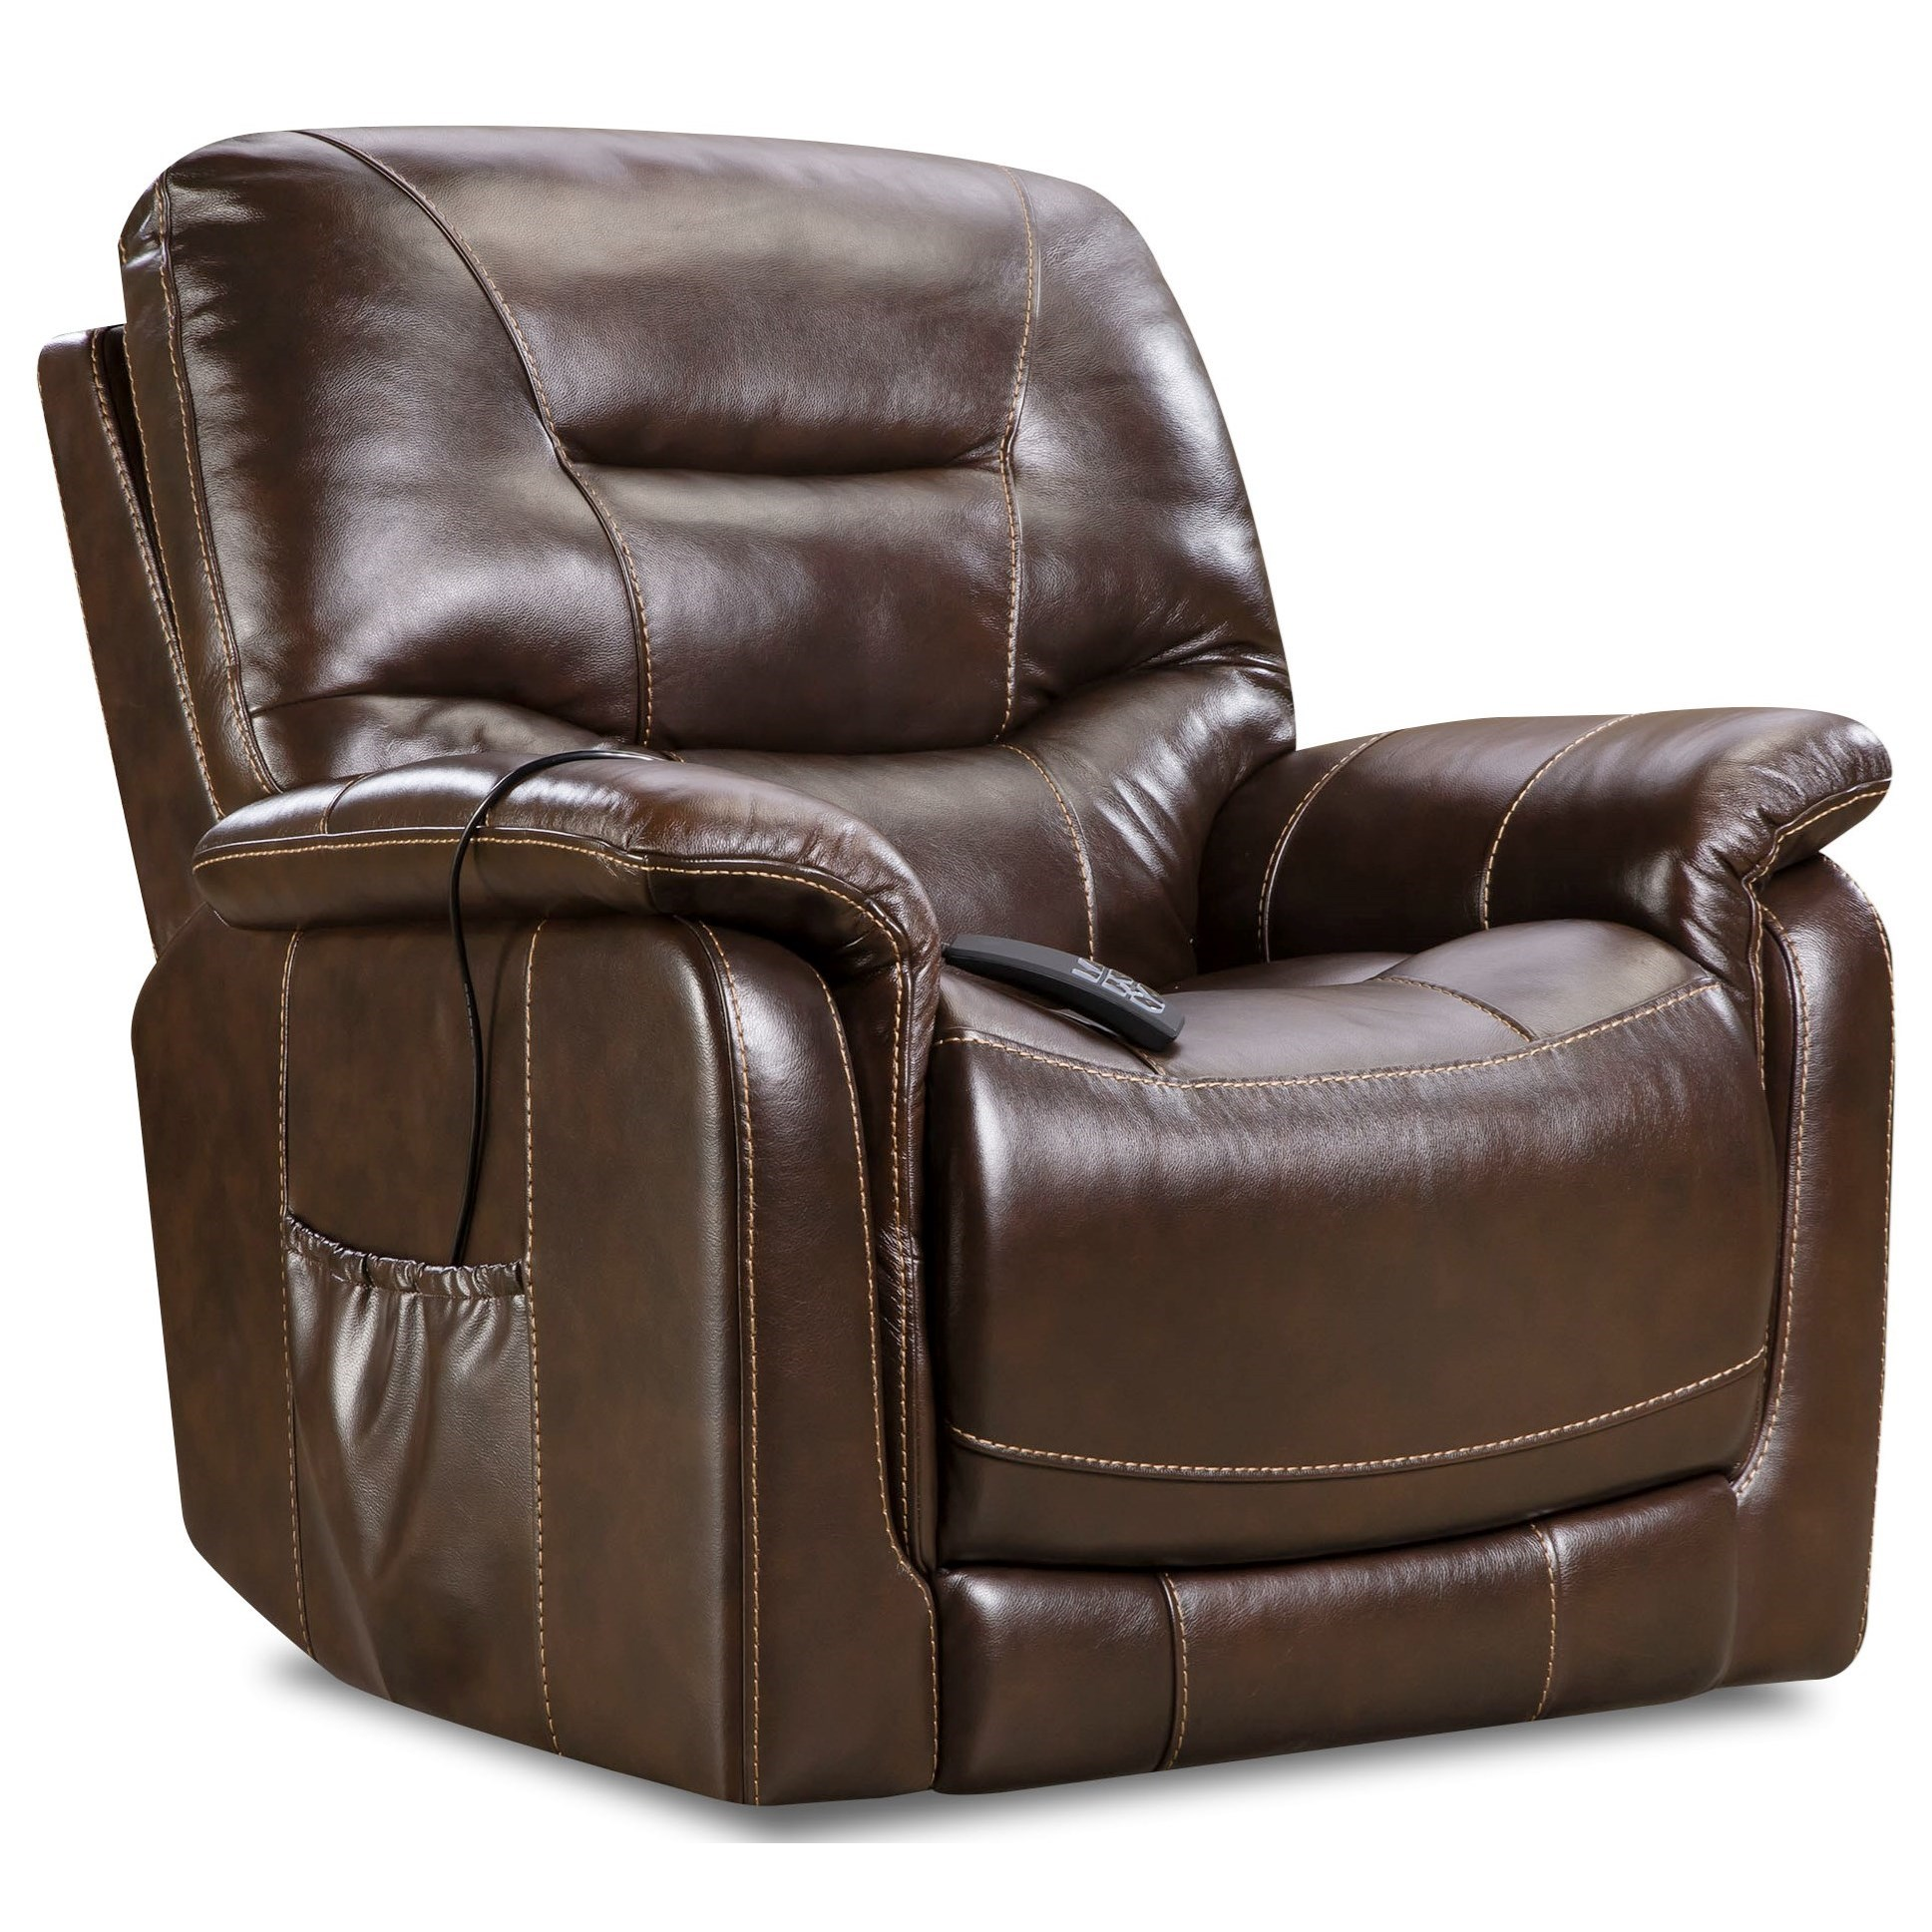 104 Power Recliner by Corinthian at Story & Lee Furniture